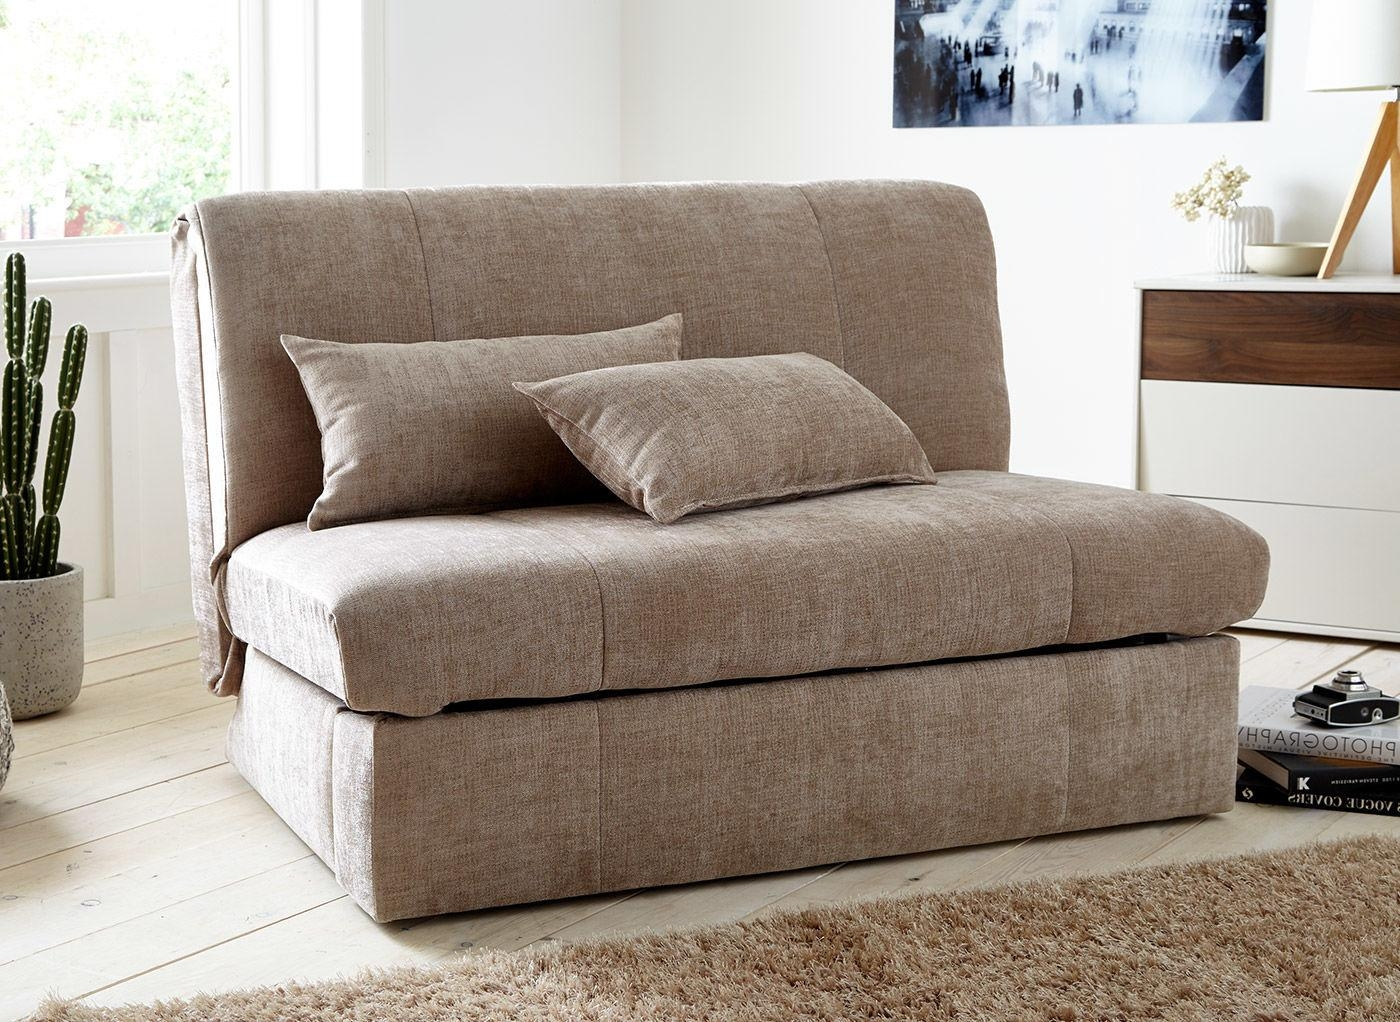 Sofas Center : Besta Beds And Sleepers Mattress Topperbest For Intended For Sofa Beds With Support Boards (Image 18 of 20)